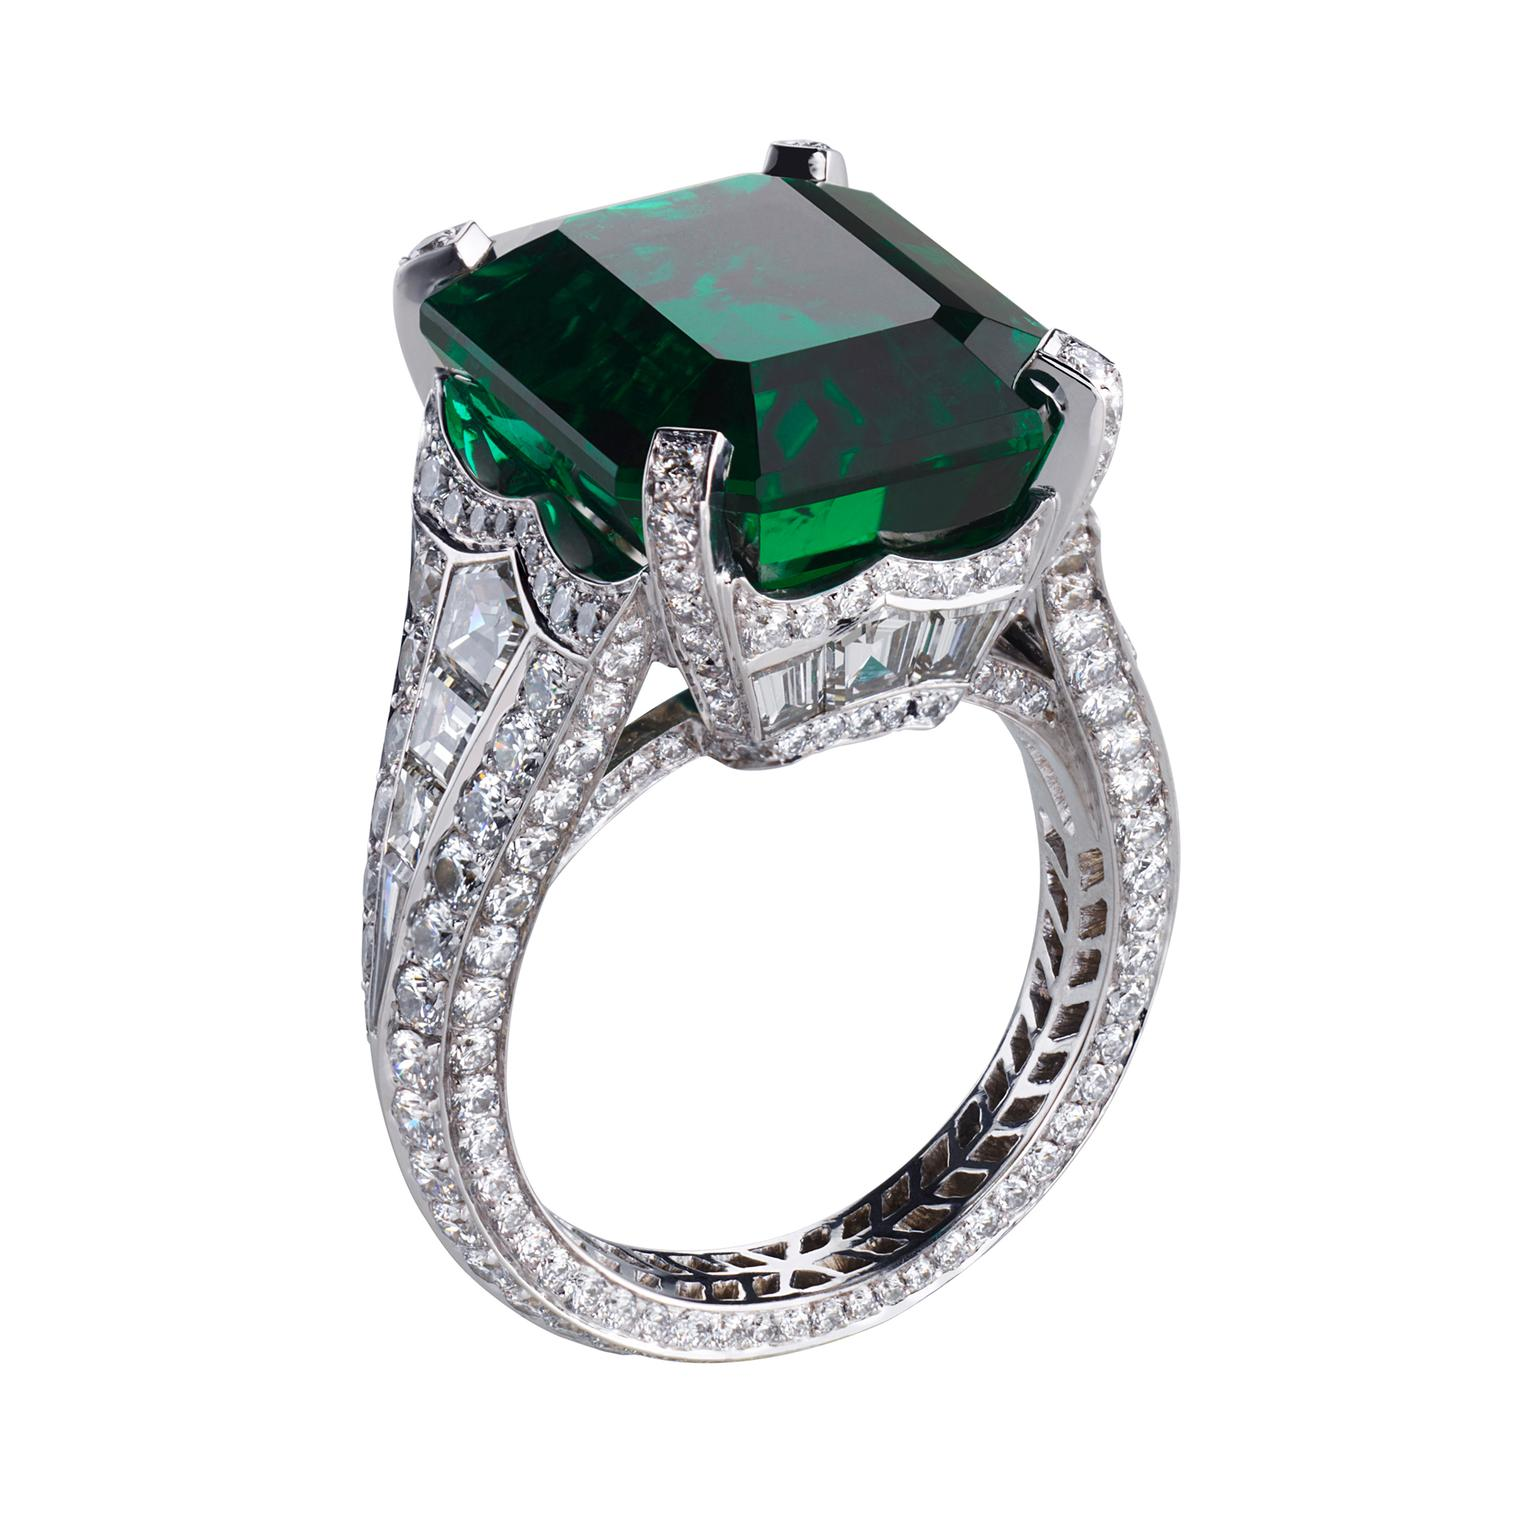 Fabergé Devotion emerald and diamond ring